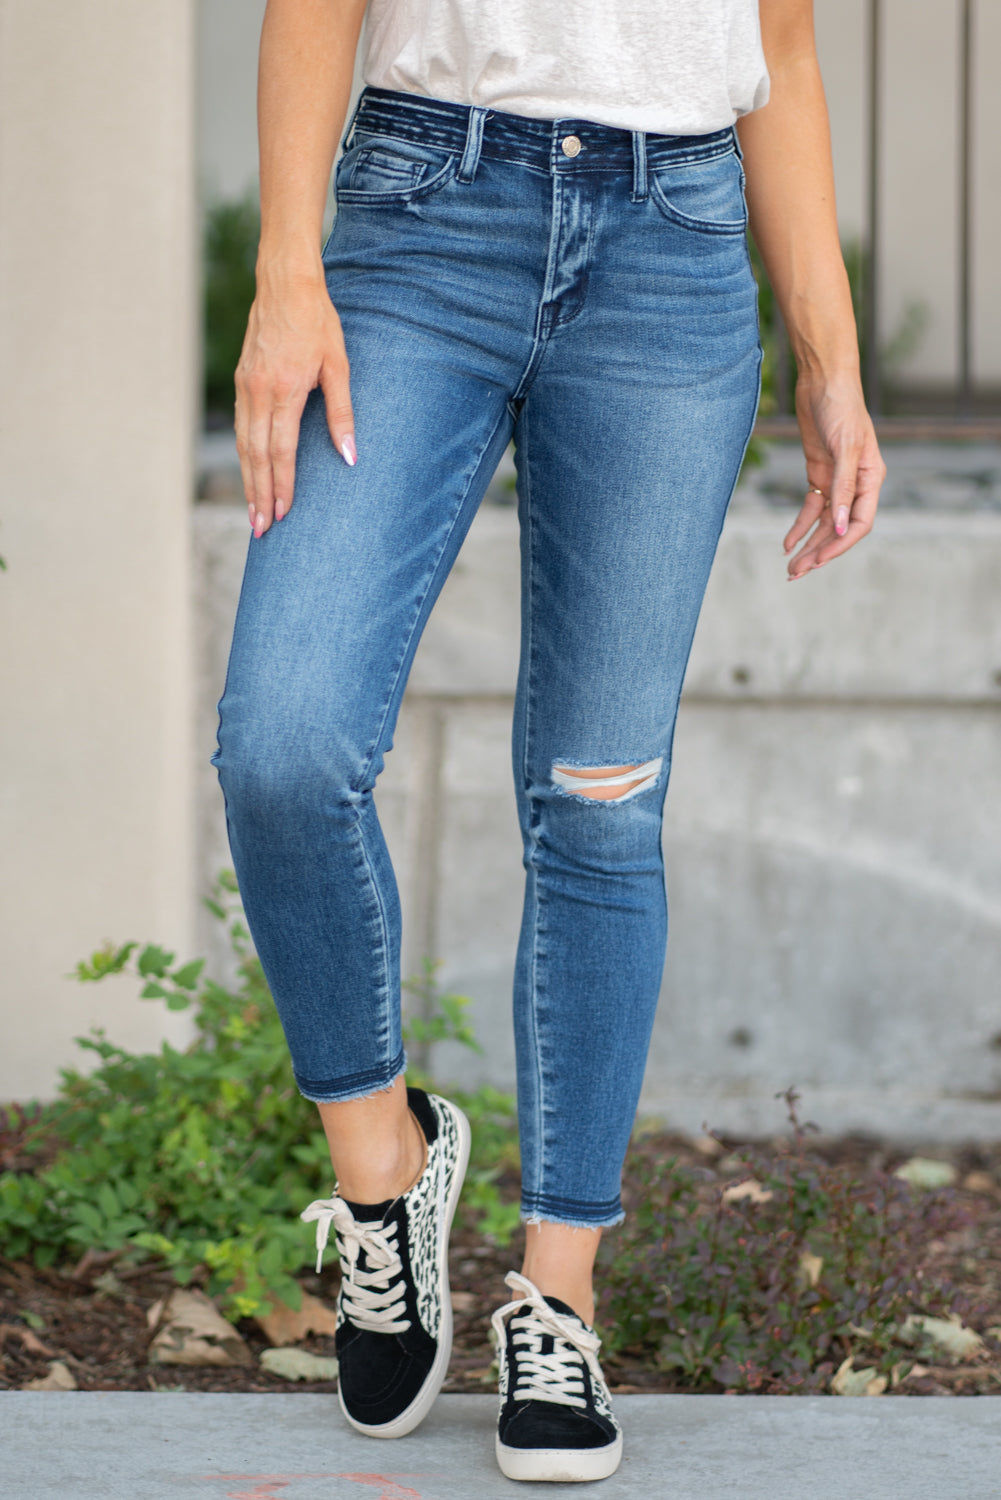 "VERVET by Flying Monkey Jeans Collection: Fall 2020 Name: Half Moon Skinny, 27"" Inseam Rise: Mid Rise, 9"" Front Rise 90.5% COTTON, 7.5% POLYESTER, 2% SPANDEX Machine Wash Separately In Cold Water Stitching: Classic Fly: Zipper Style #: VT1182 Contact us for any additional measurements or sizing.  Chloe is 5'8"" and 130 pounds. She wears a size 3 in jeans, a small top and 8.5 in shoes. She wearing a size 26/3 in these jeans."